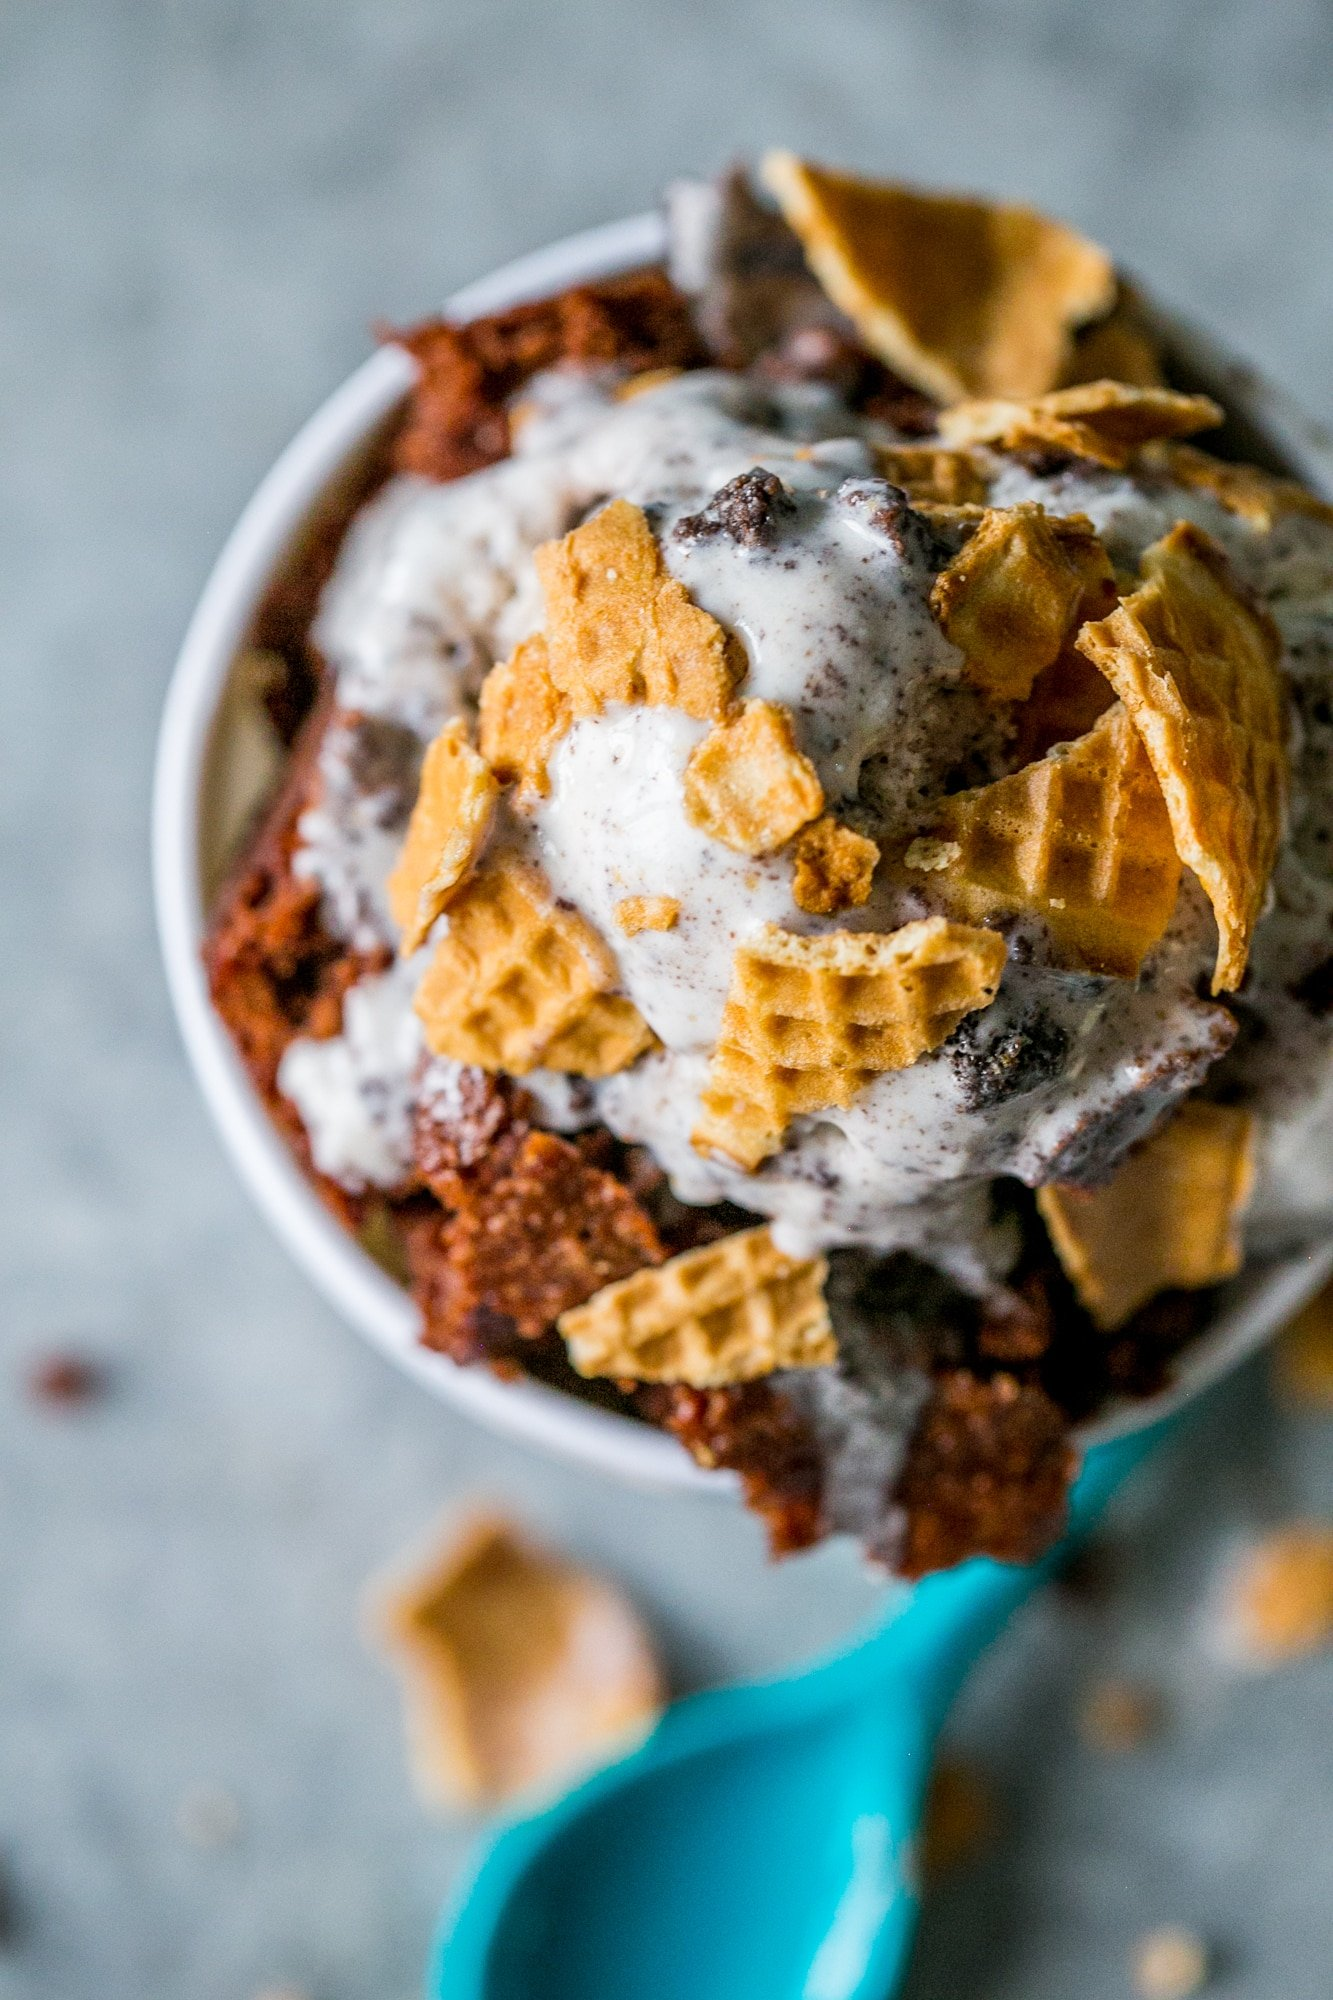 Waffle cone brownie ice cream sundae with Foodstirs brownies - so delicious!